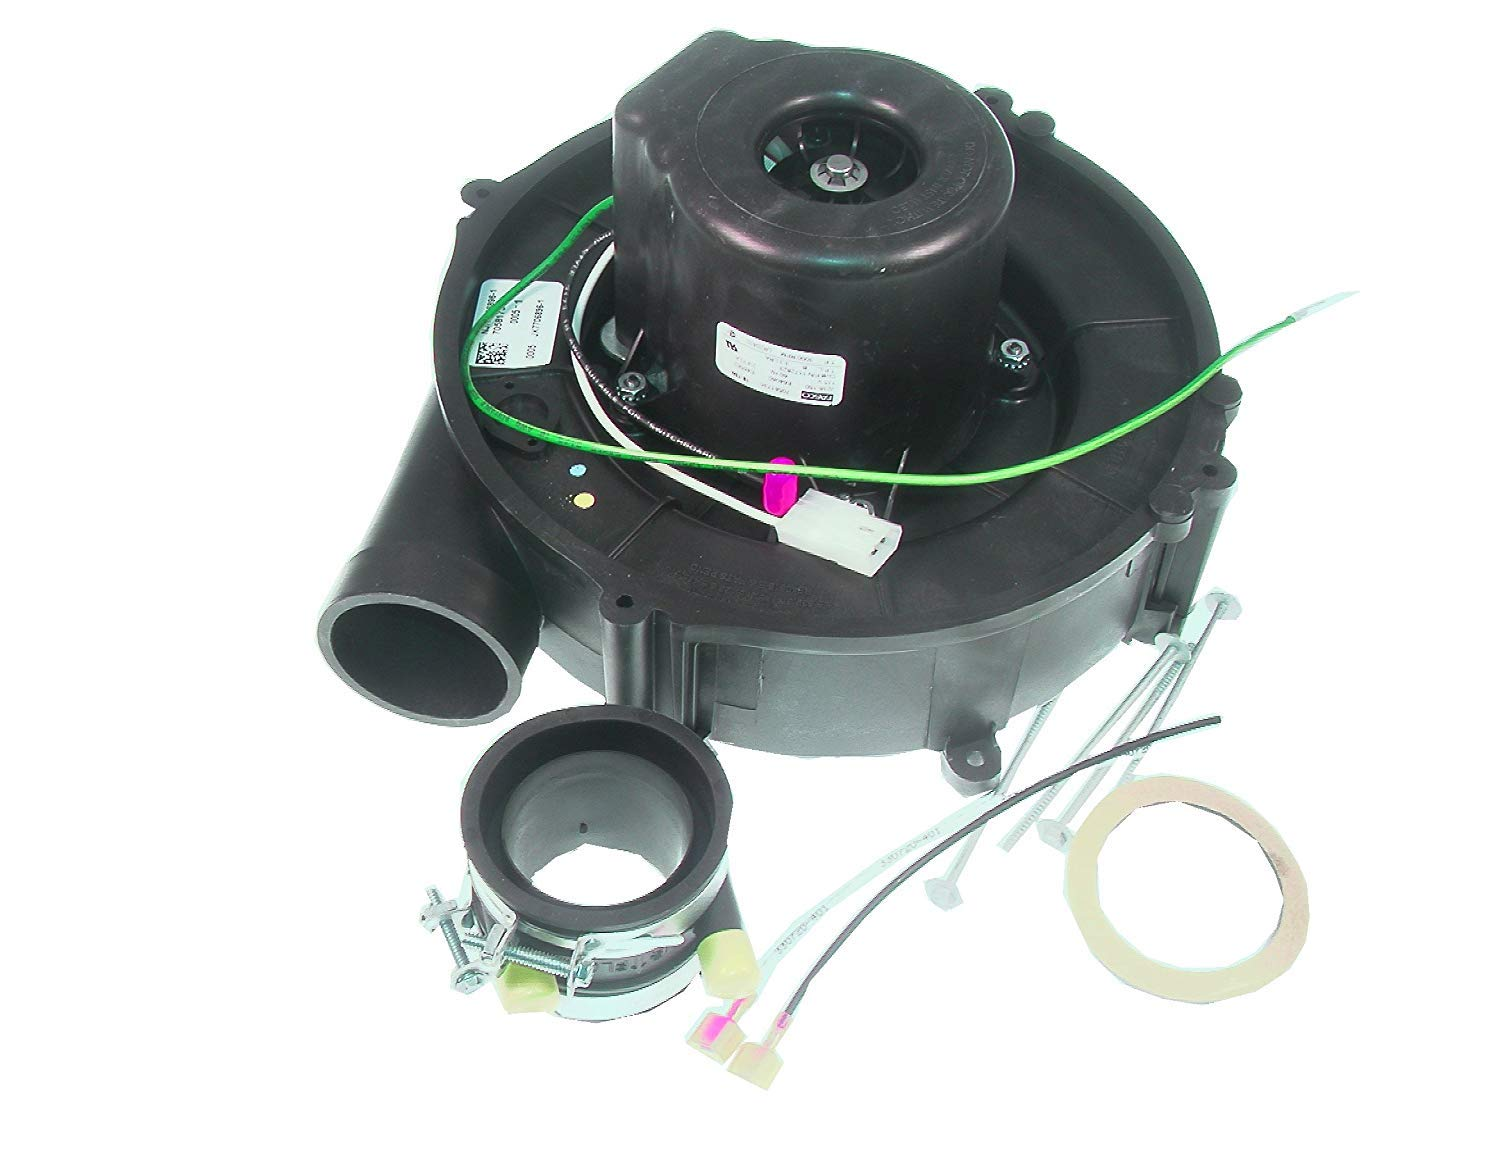 1172823 - FASCO Furnace Draft Inducer Vent Super sale period limited Venter Exhaust Motor OFFer